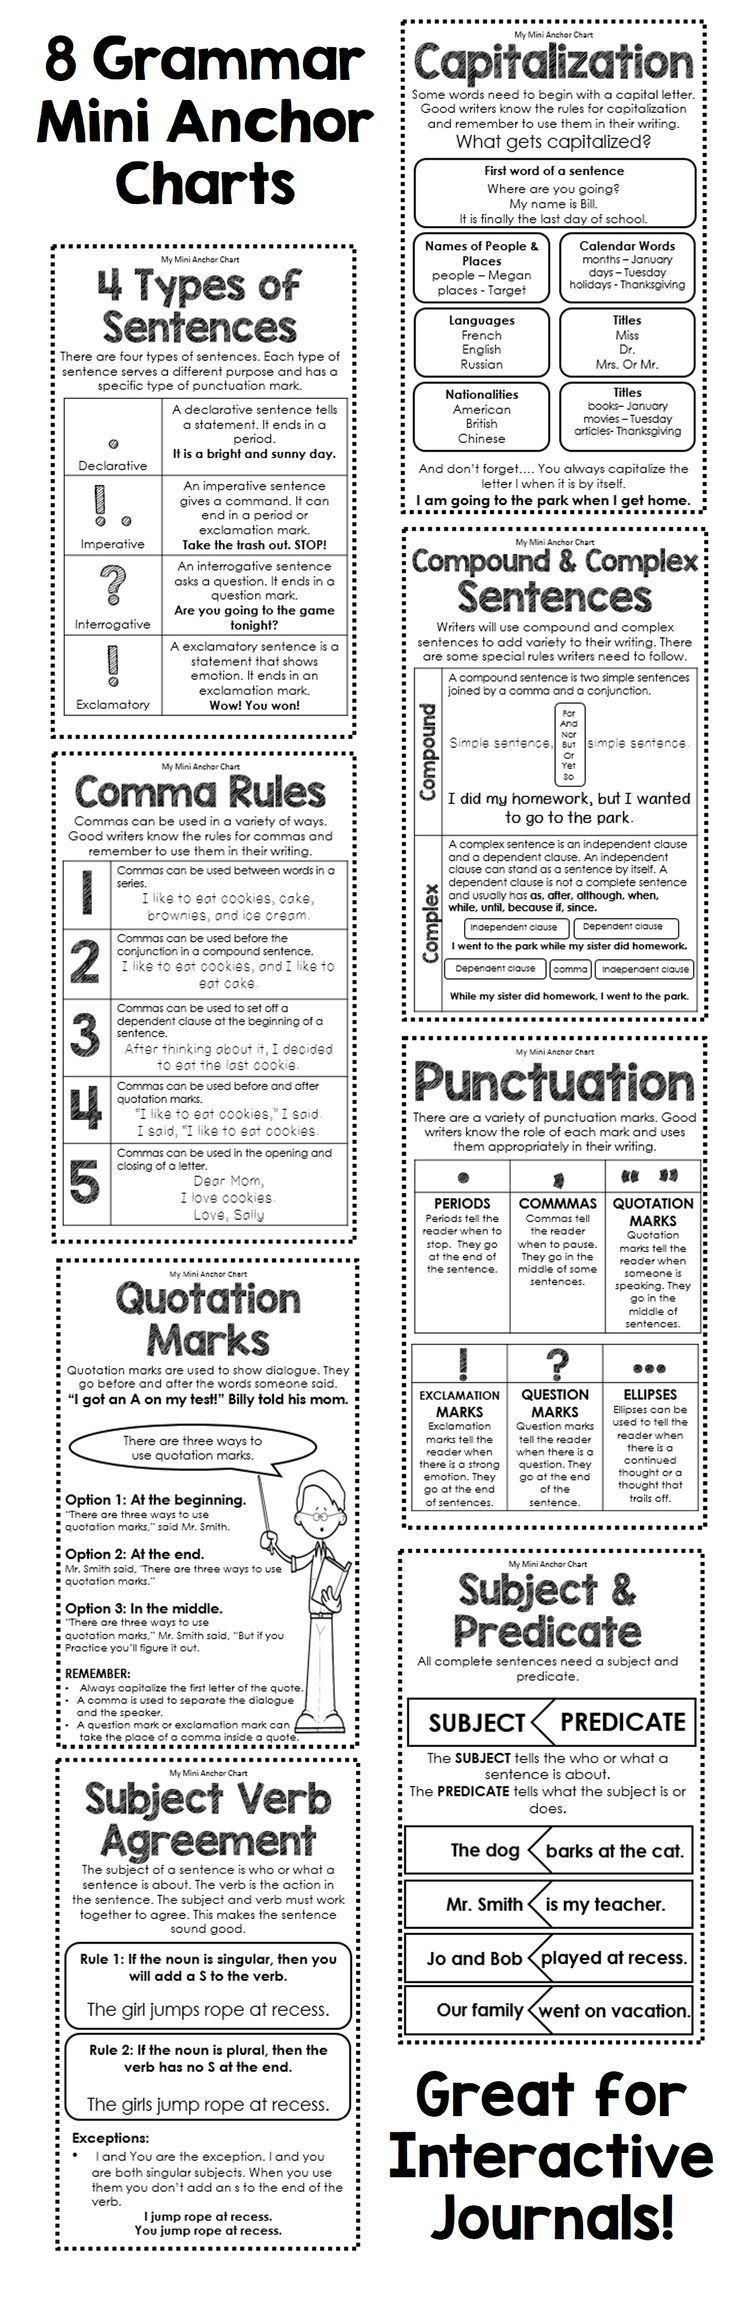 Early Addition Worksheets Grammar Mini Anchor Charts  Grammar Rules Anchor Charts And  Jamestown Worksheet Pdf with Domestic Violence Safety Plan Worksheet Excel Grammar Mini Anchor Charts Subject And Predicatecomplex  Probability Tree Diagrams Worksheet Pdf